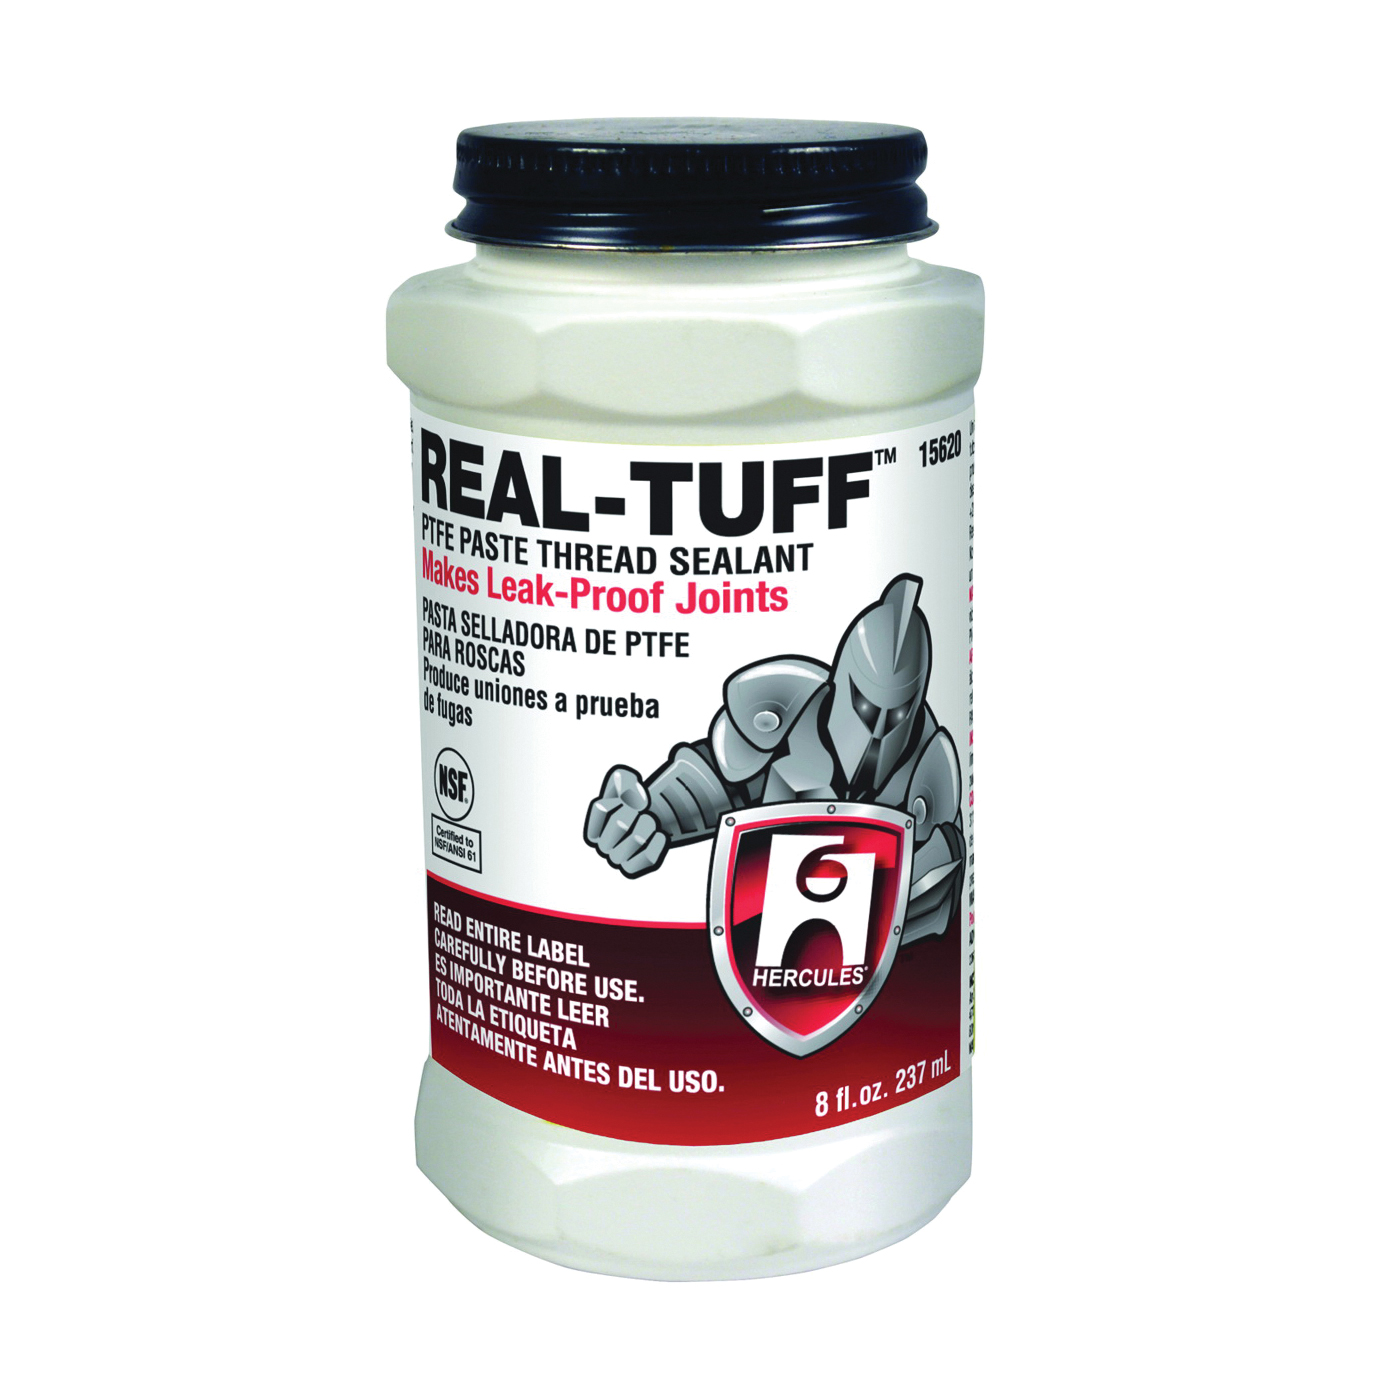 Picture of Oatey REAL TUFF 15620 Thread Sealant, 8 oz, Can, Paste, White